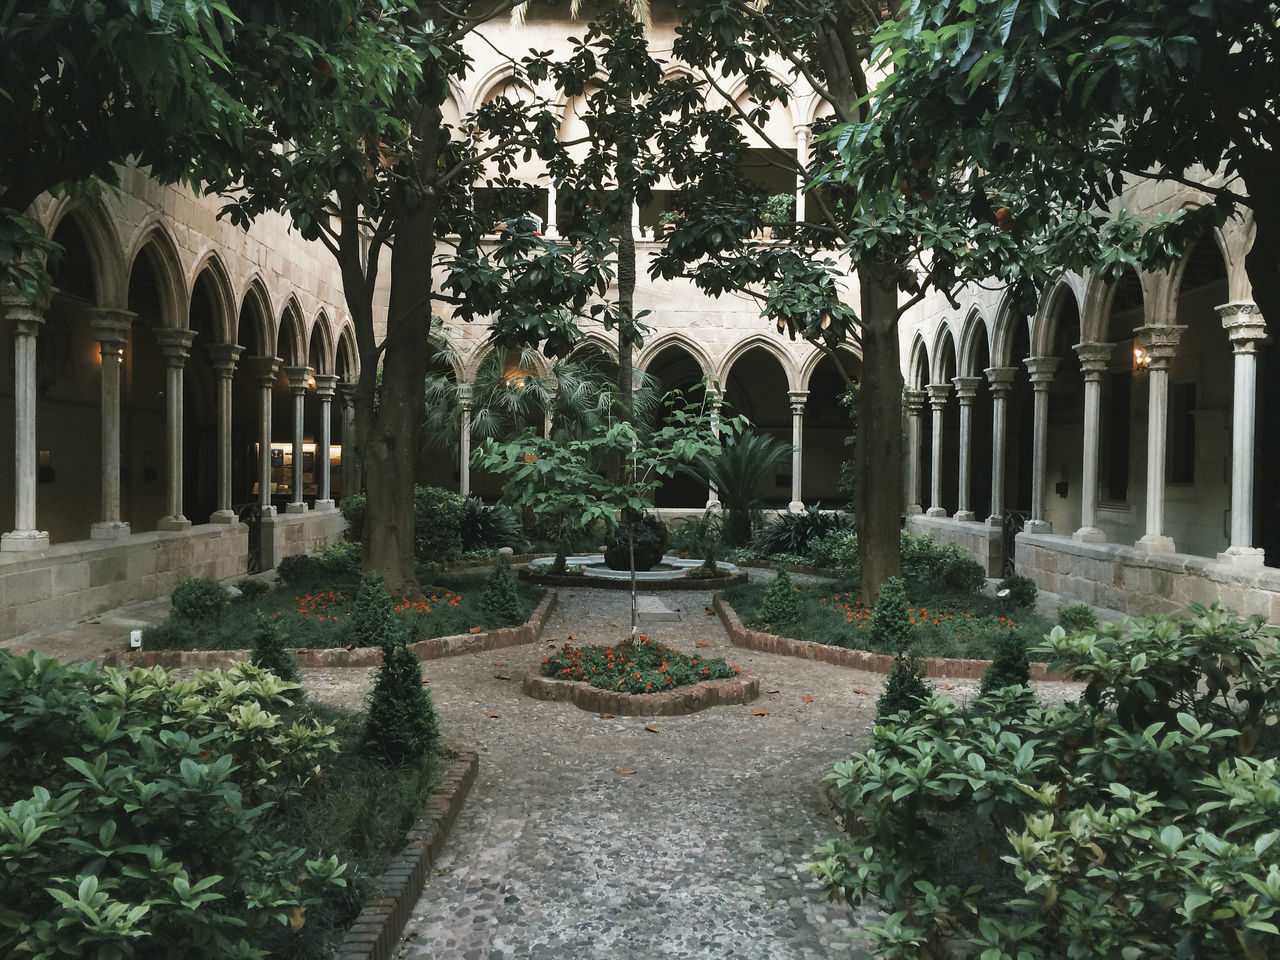 Arch Architecture Calm Church Cloister Day Introspection Meditation No People Outdoors Plant Spirituality Tree